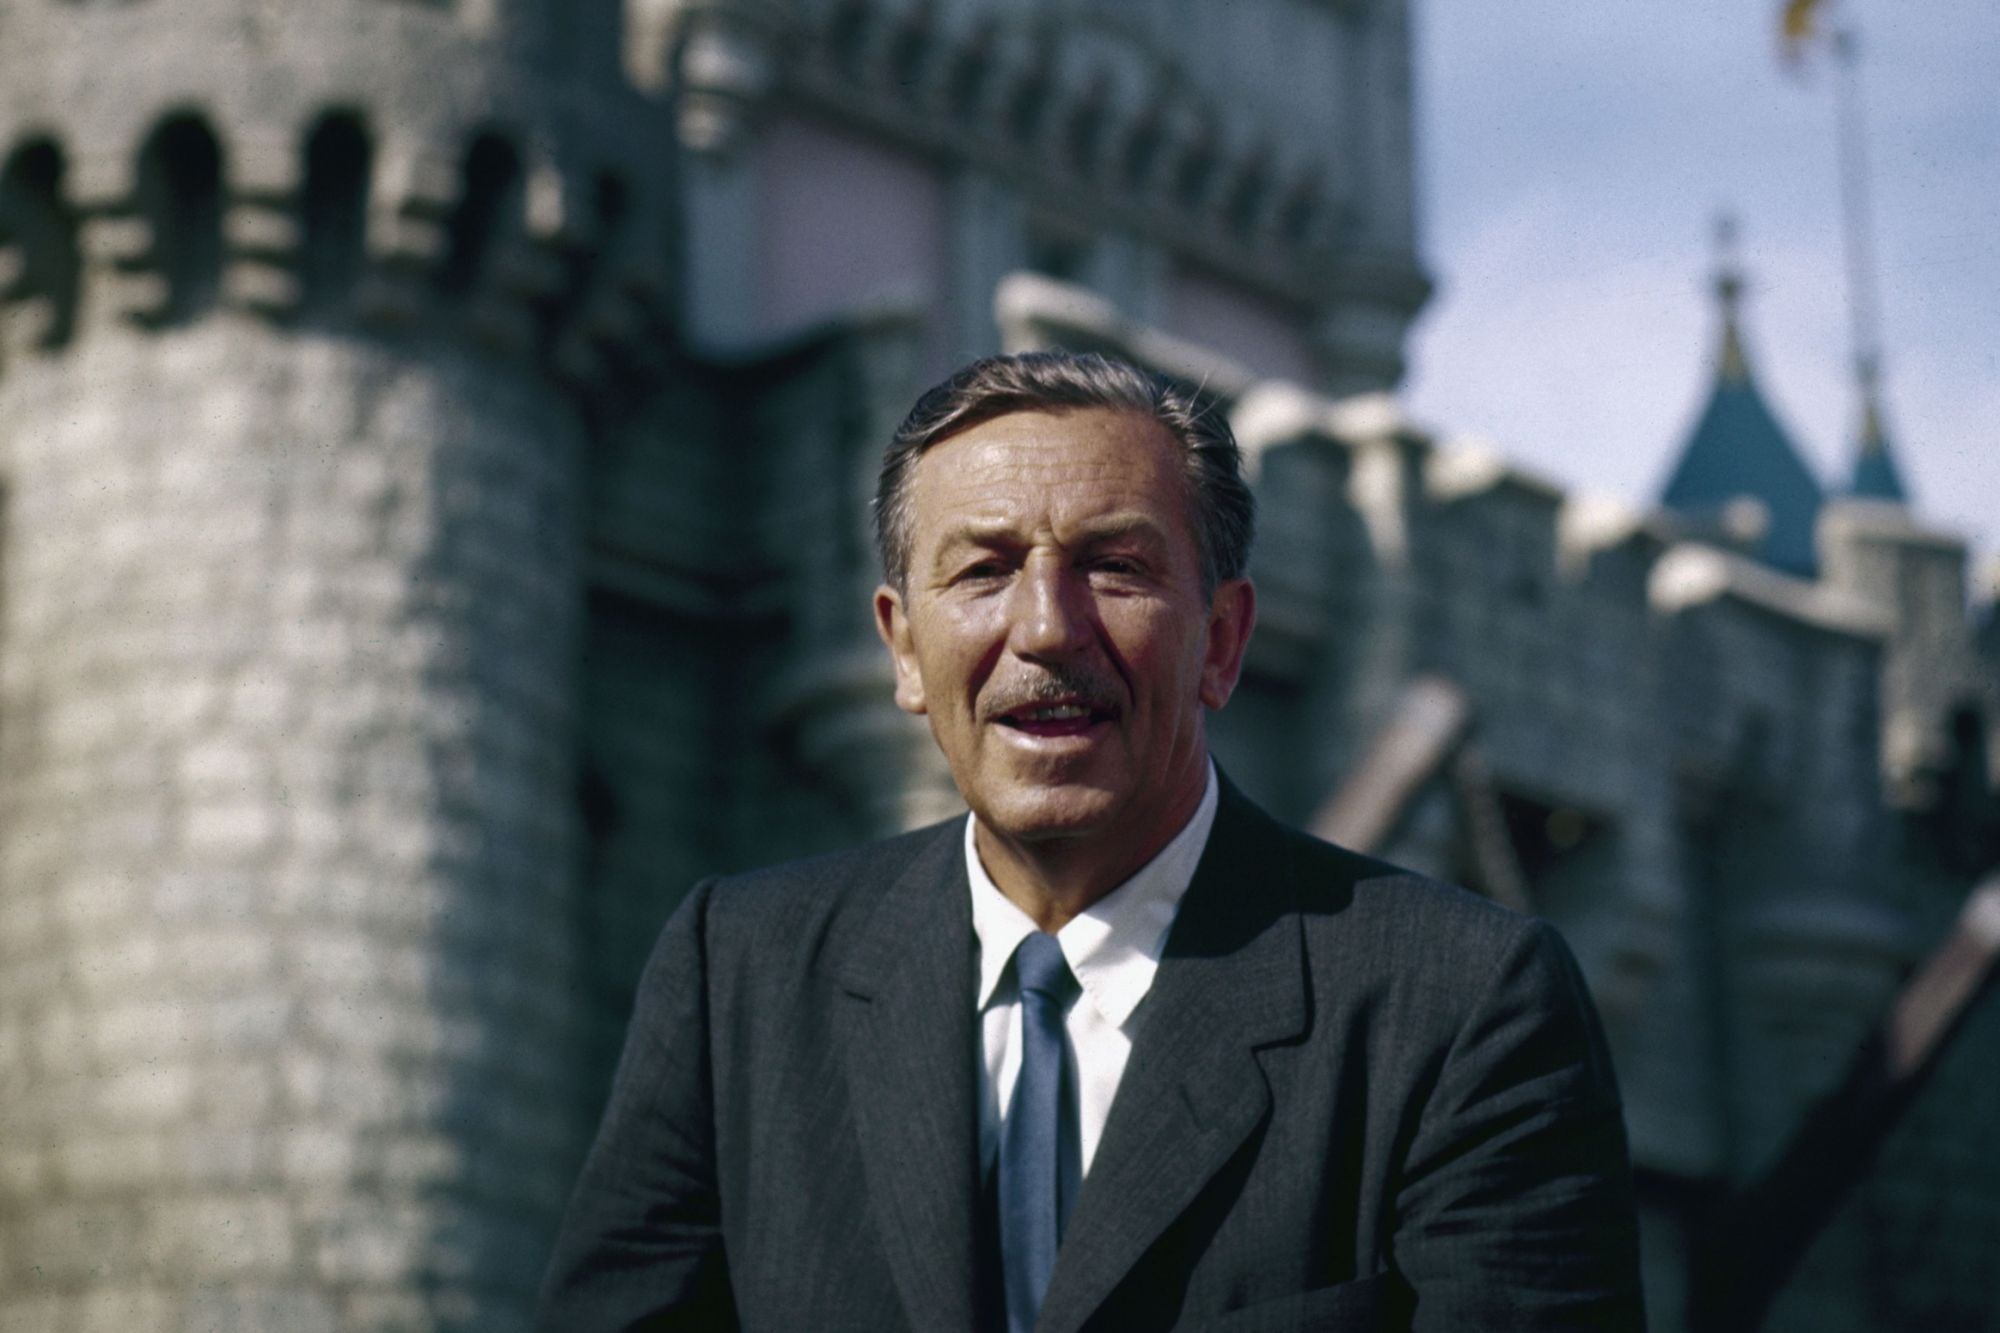 walt disney quotes that could boost your small business